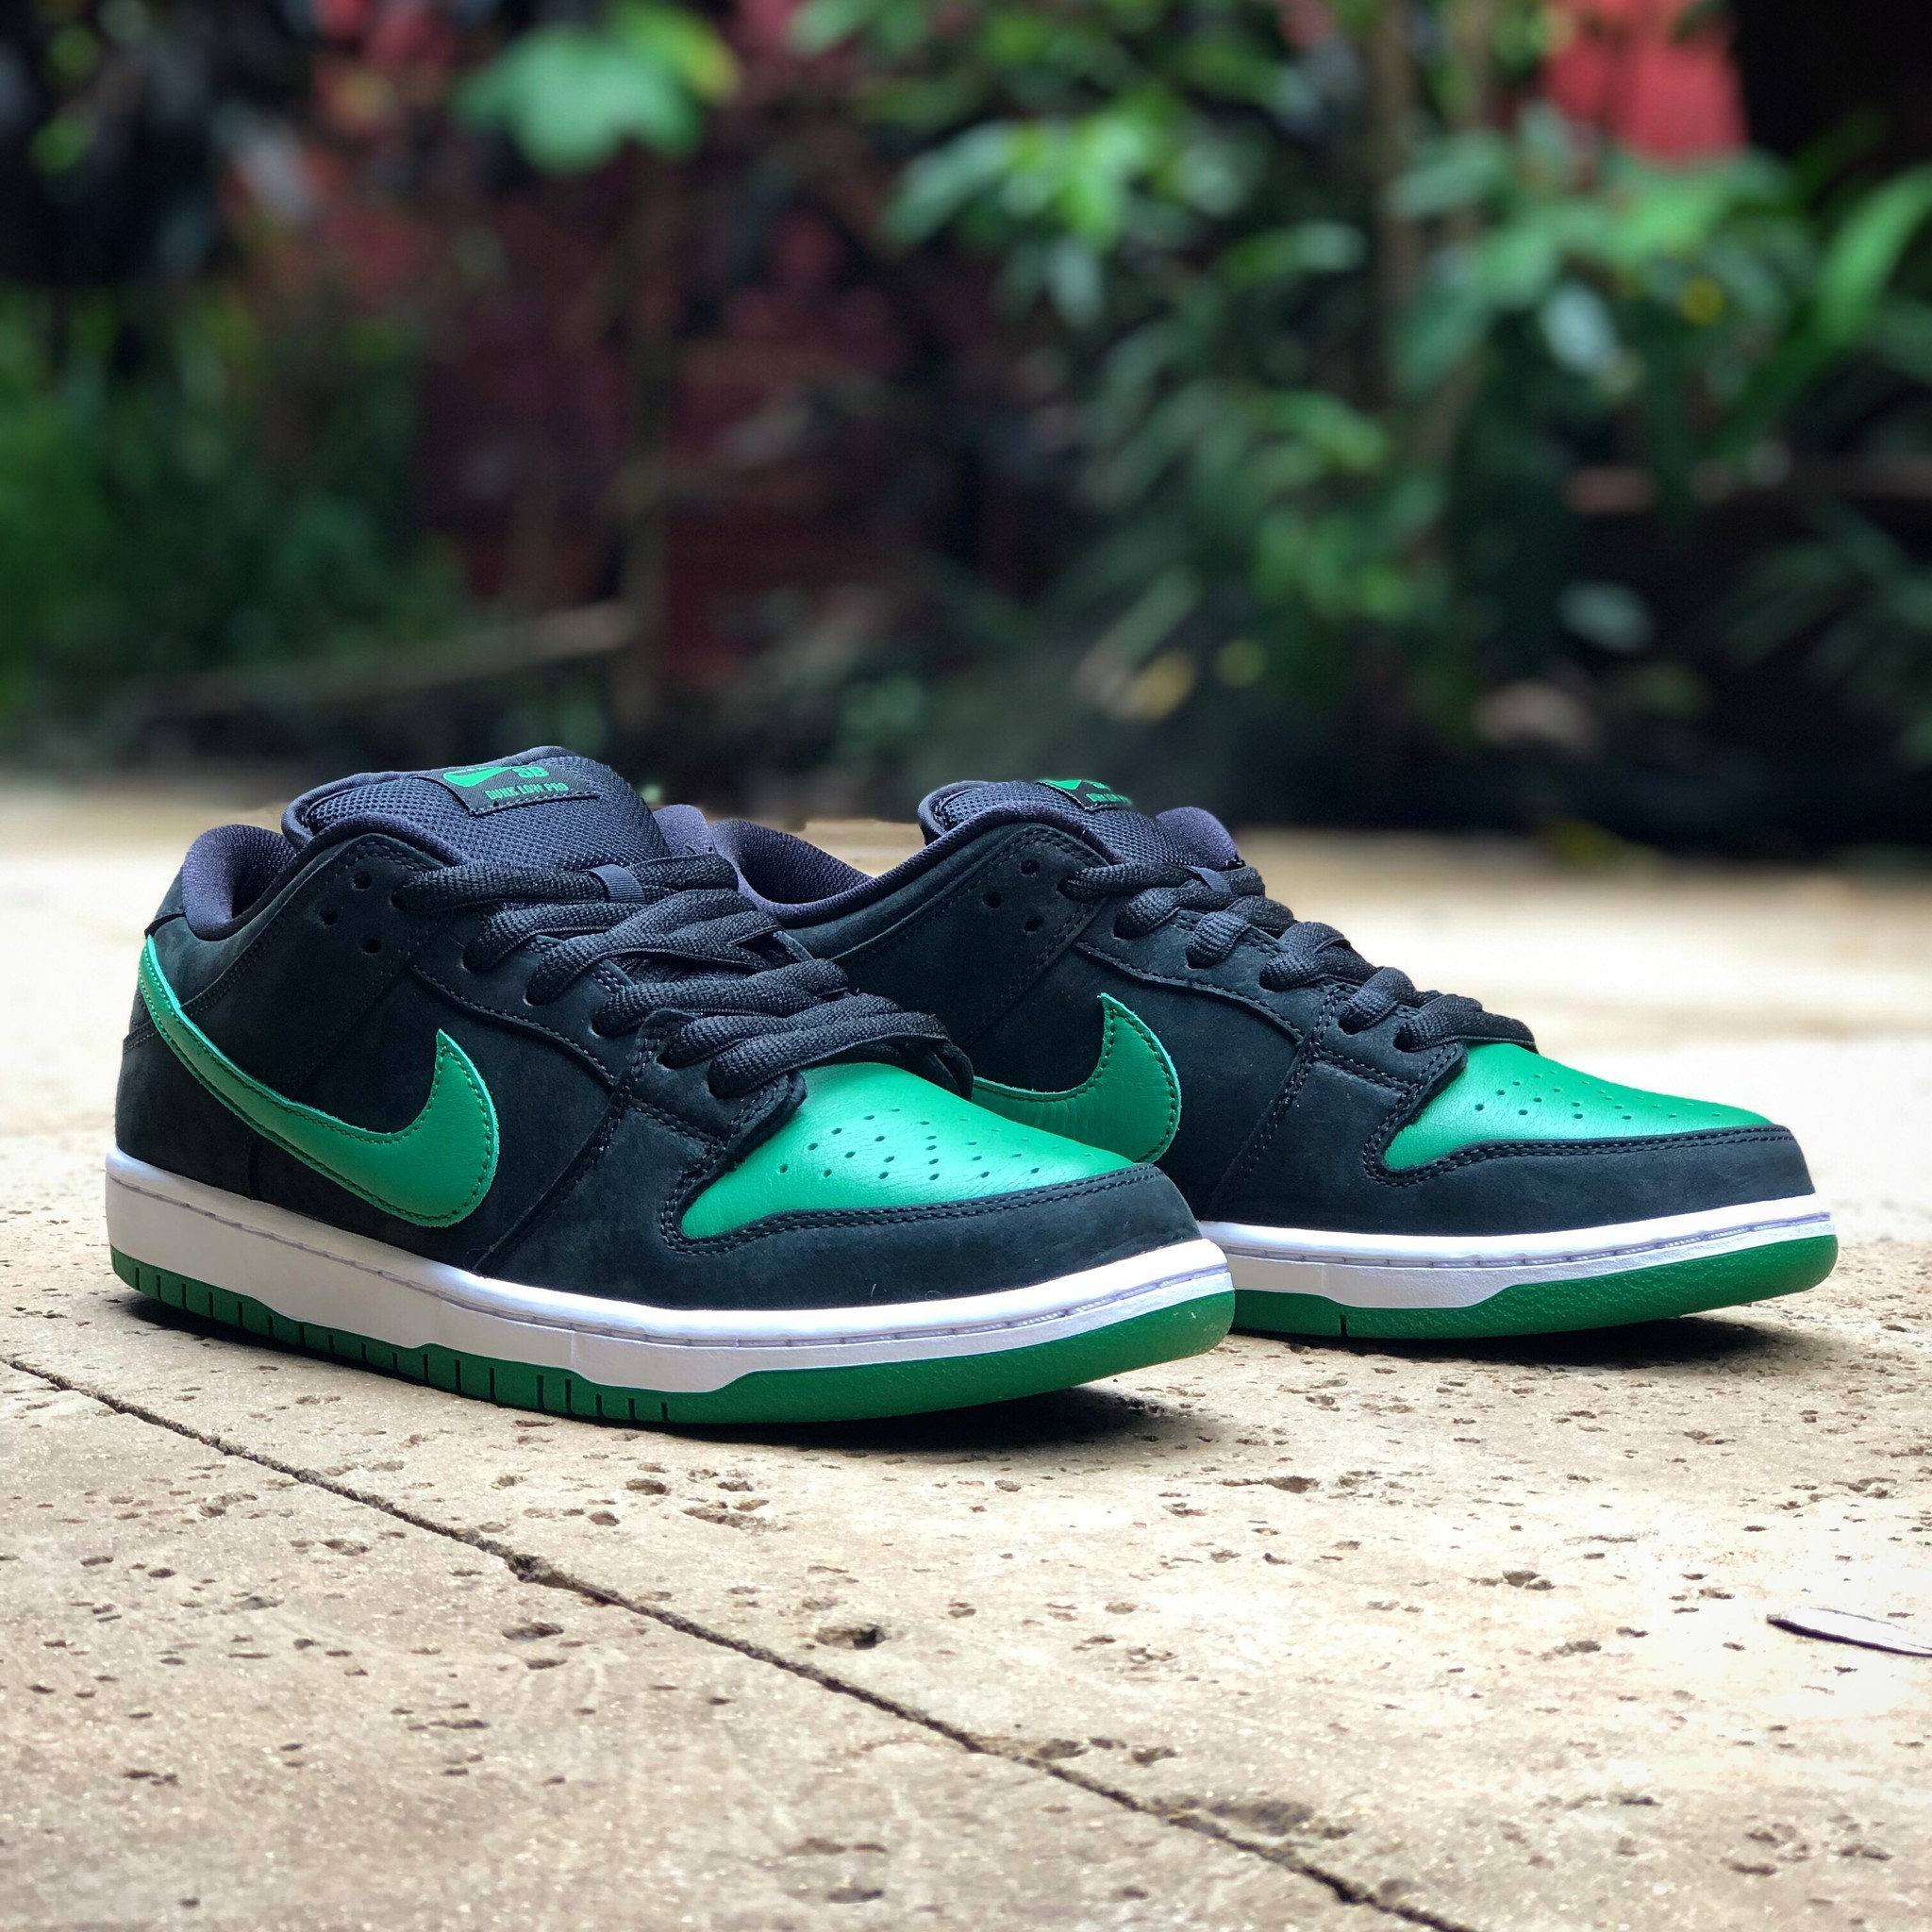 low priced d3da1 16411 Nike SB Dunk Low Pro Black/Pine